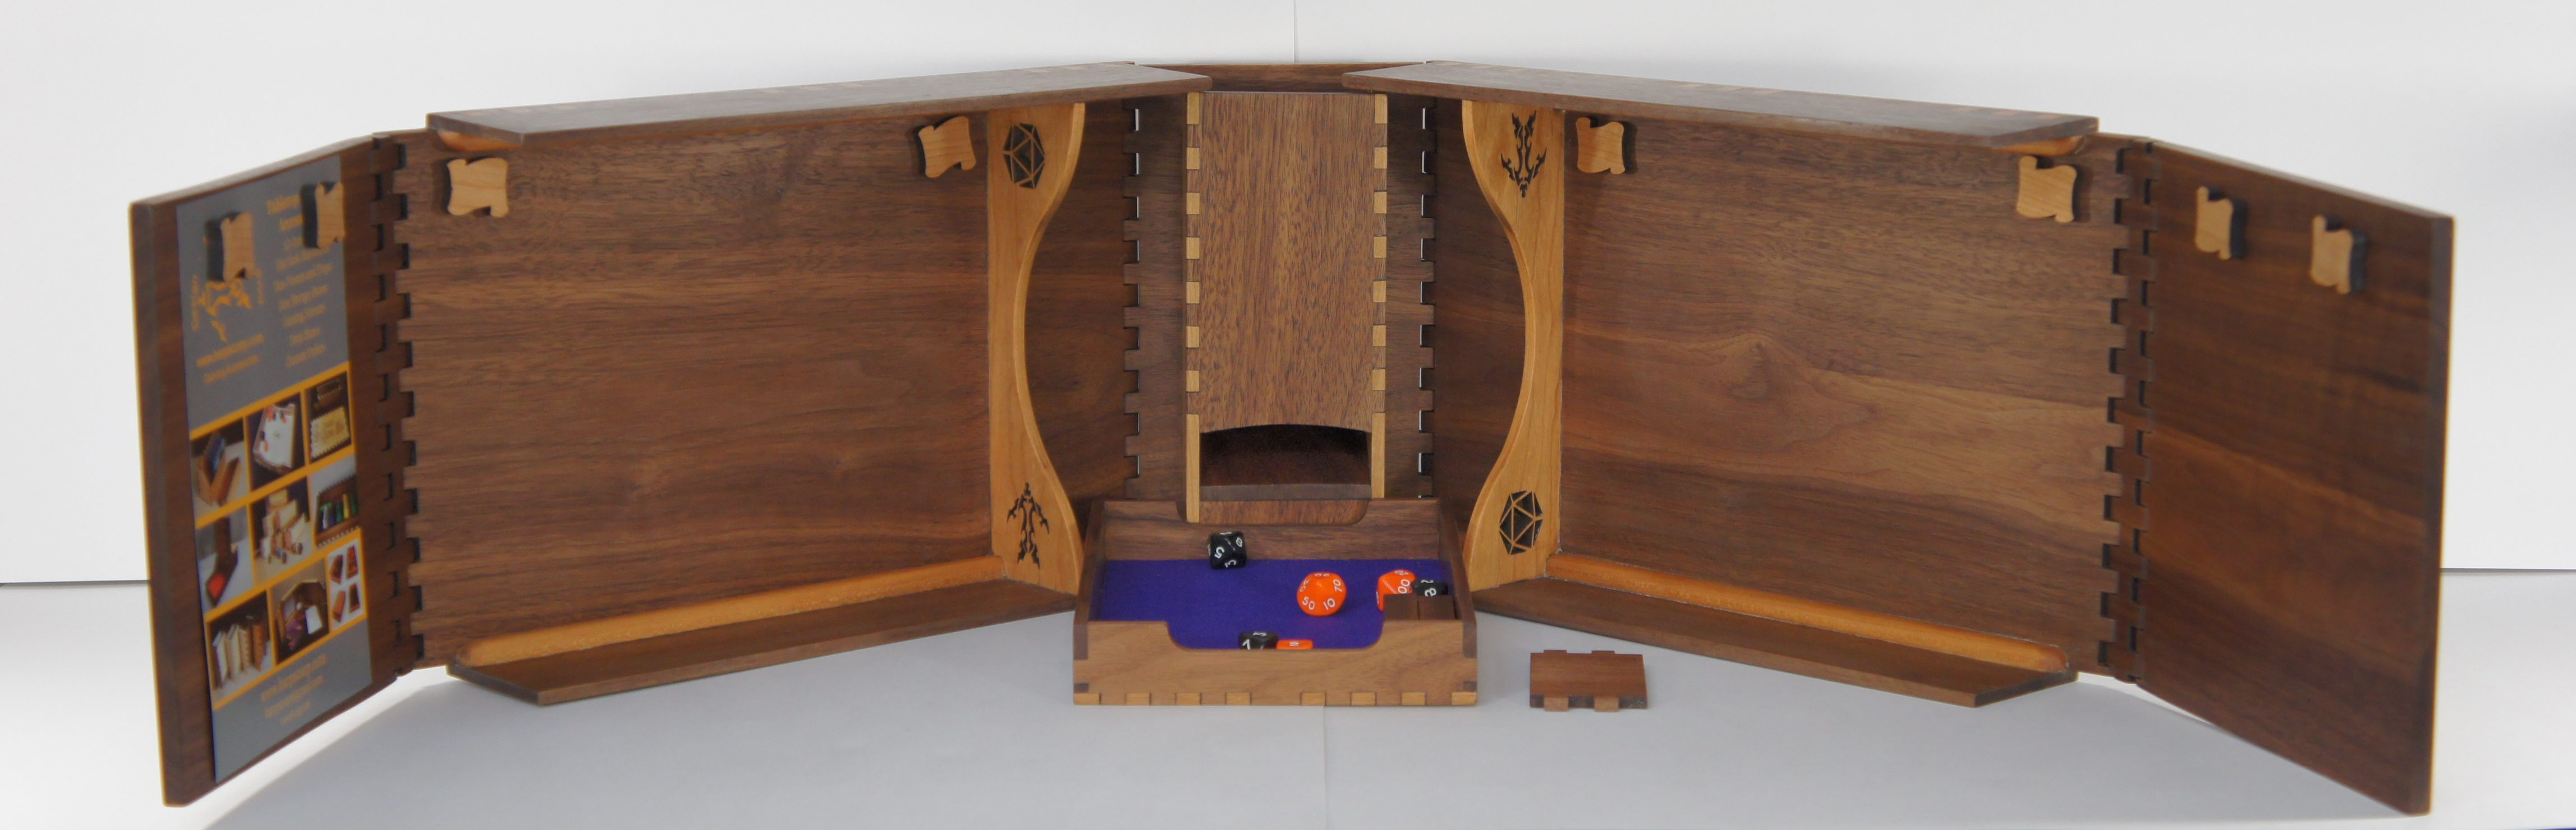 Governor - Dungeon Master/Game Master Screen - Walnut Wood